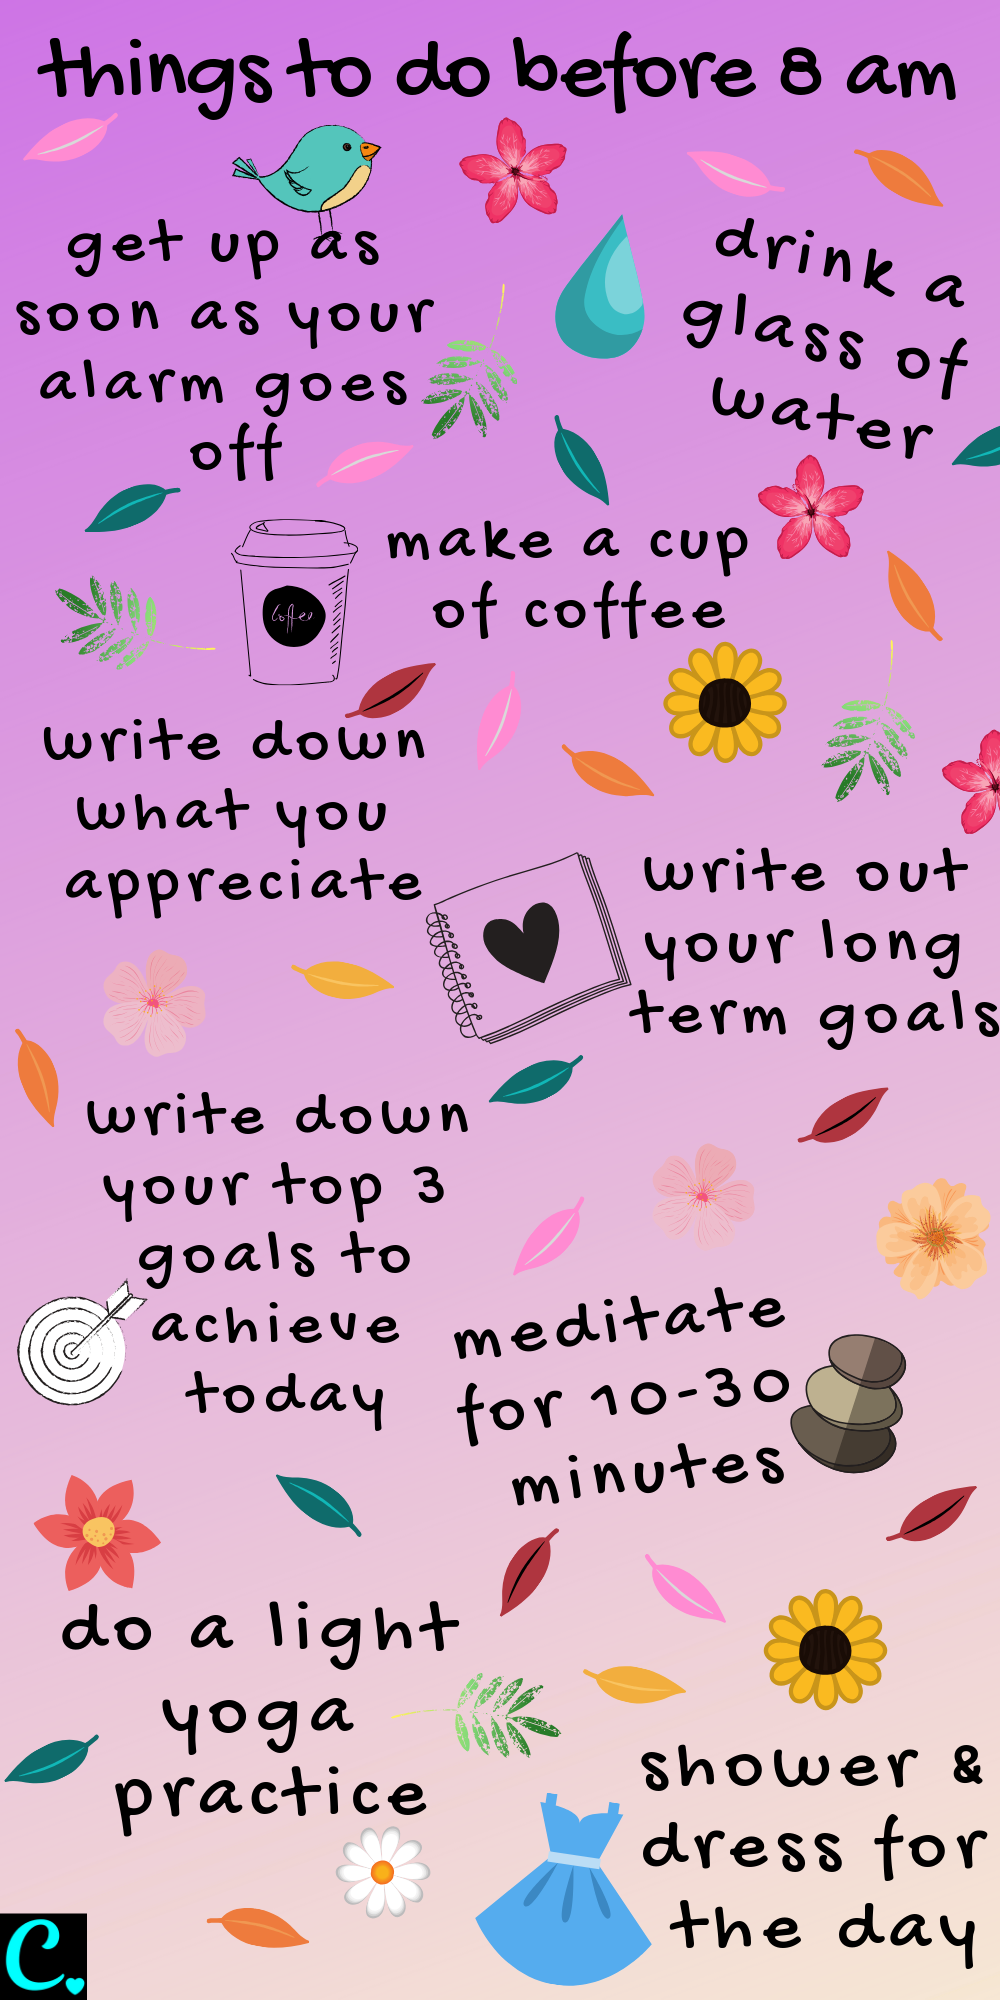 The best morning routine infographic   * things to do before 8 am   Productivity tips   habits for success   #morningroutine #productivityinfographic #infographic #morningroutineinfographic #healthyroutineinforgraphic #captivatingcrazy Via: https://captivatingcrazy.com